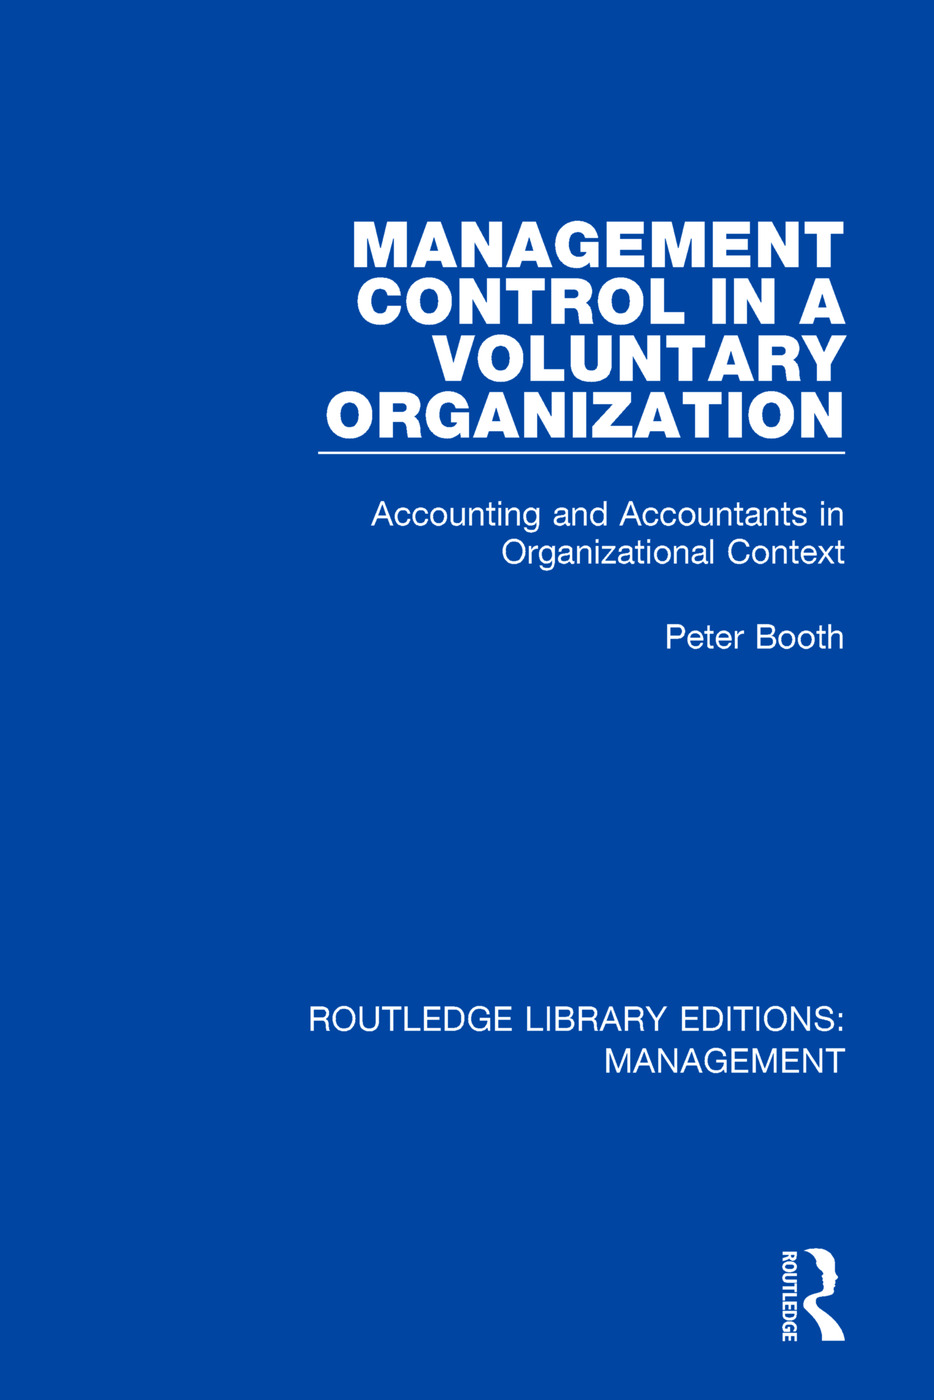 Management Control in a Voluntary Organization: Accounting and Accountants in Organizational Context, 1st Edition (Paperback) book cover